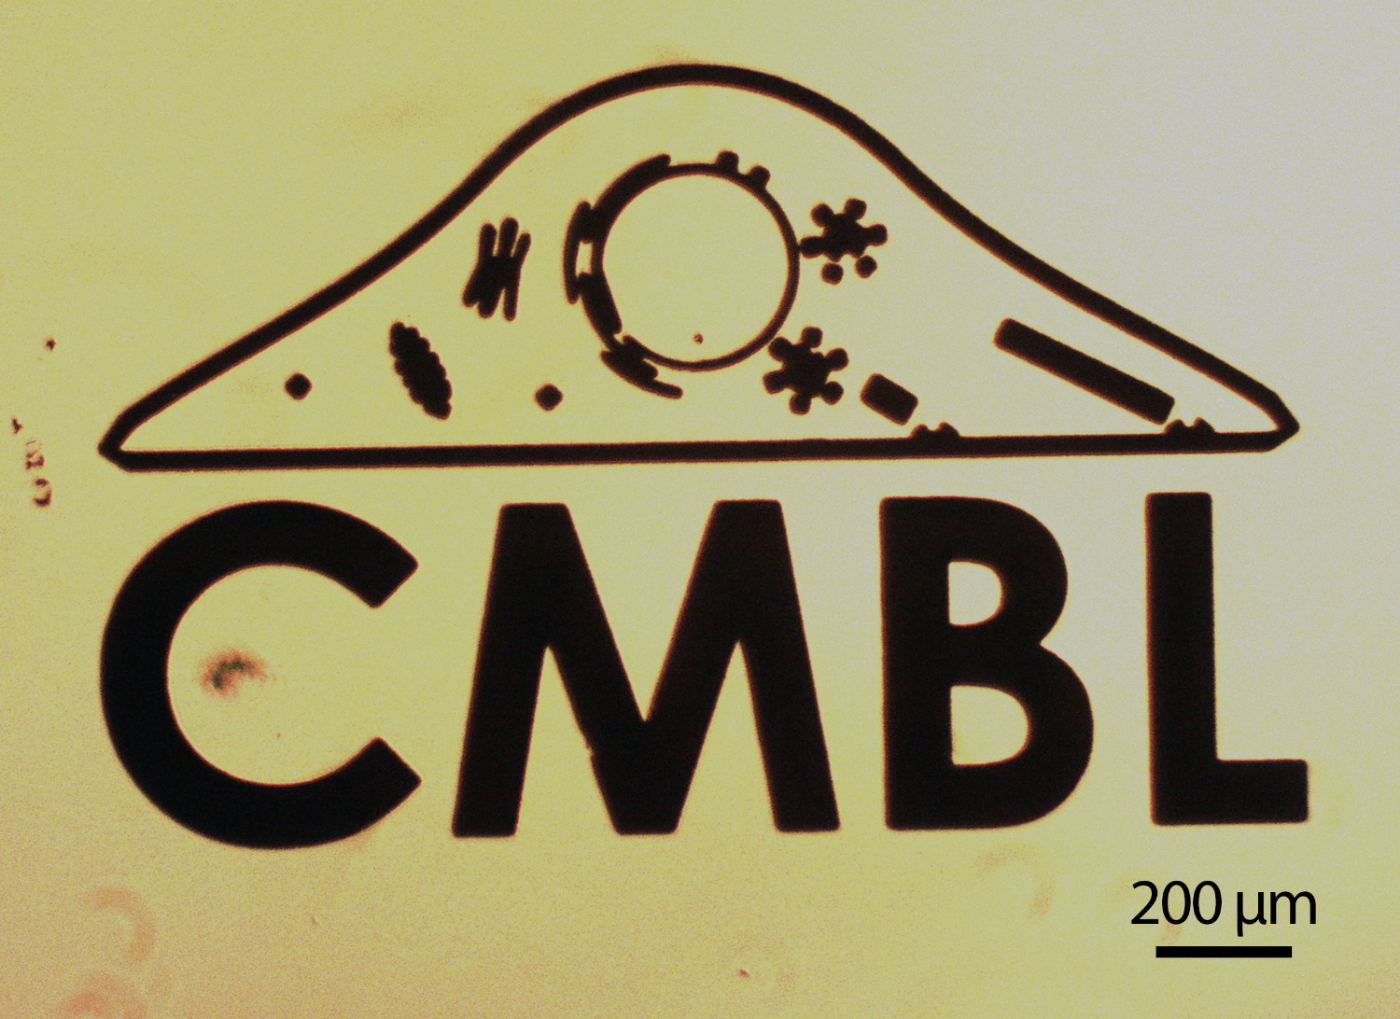 Gold patterned CMBL logo created using photolithography, gold evaporation and lift-off